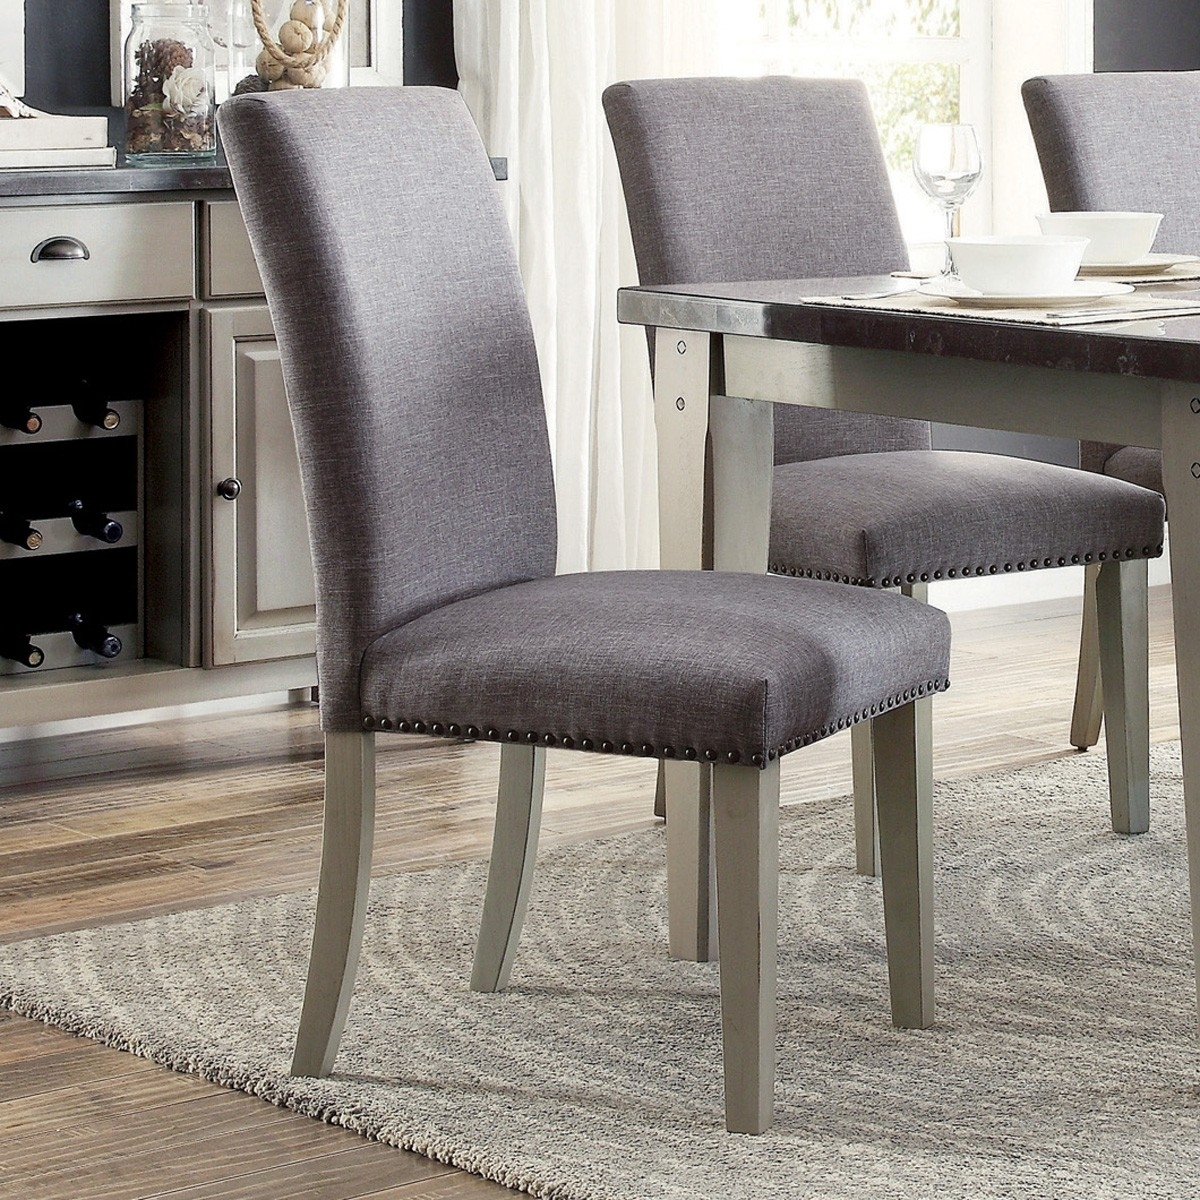 Inspiration about Grady Side Chairs Pertaining To Current Mendel Grey Side Chair (Set Of 2) For $159.94 – Furnitureusa (#16 of 20)